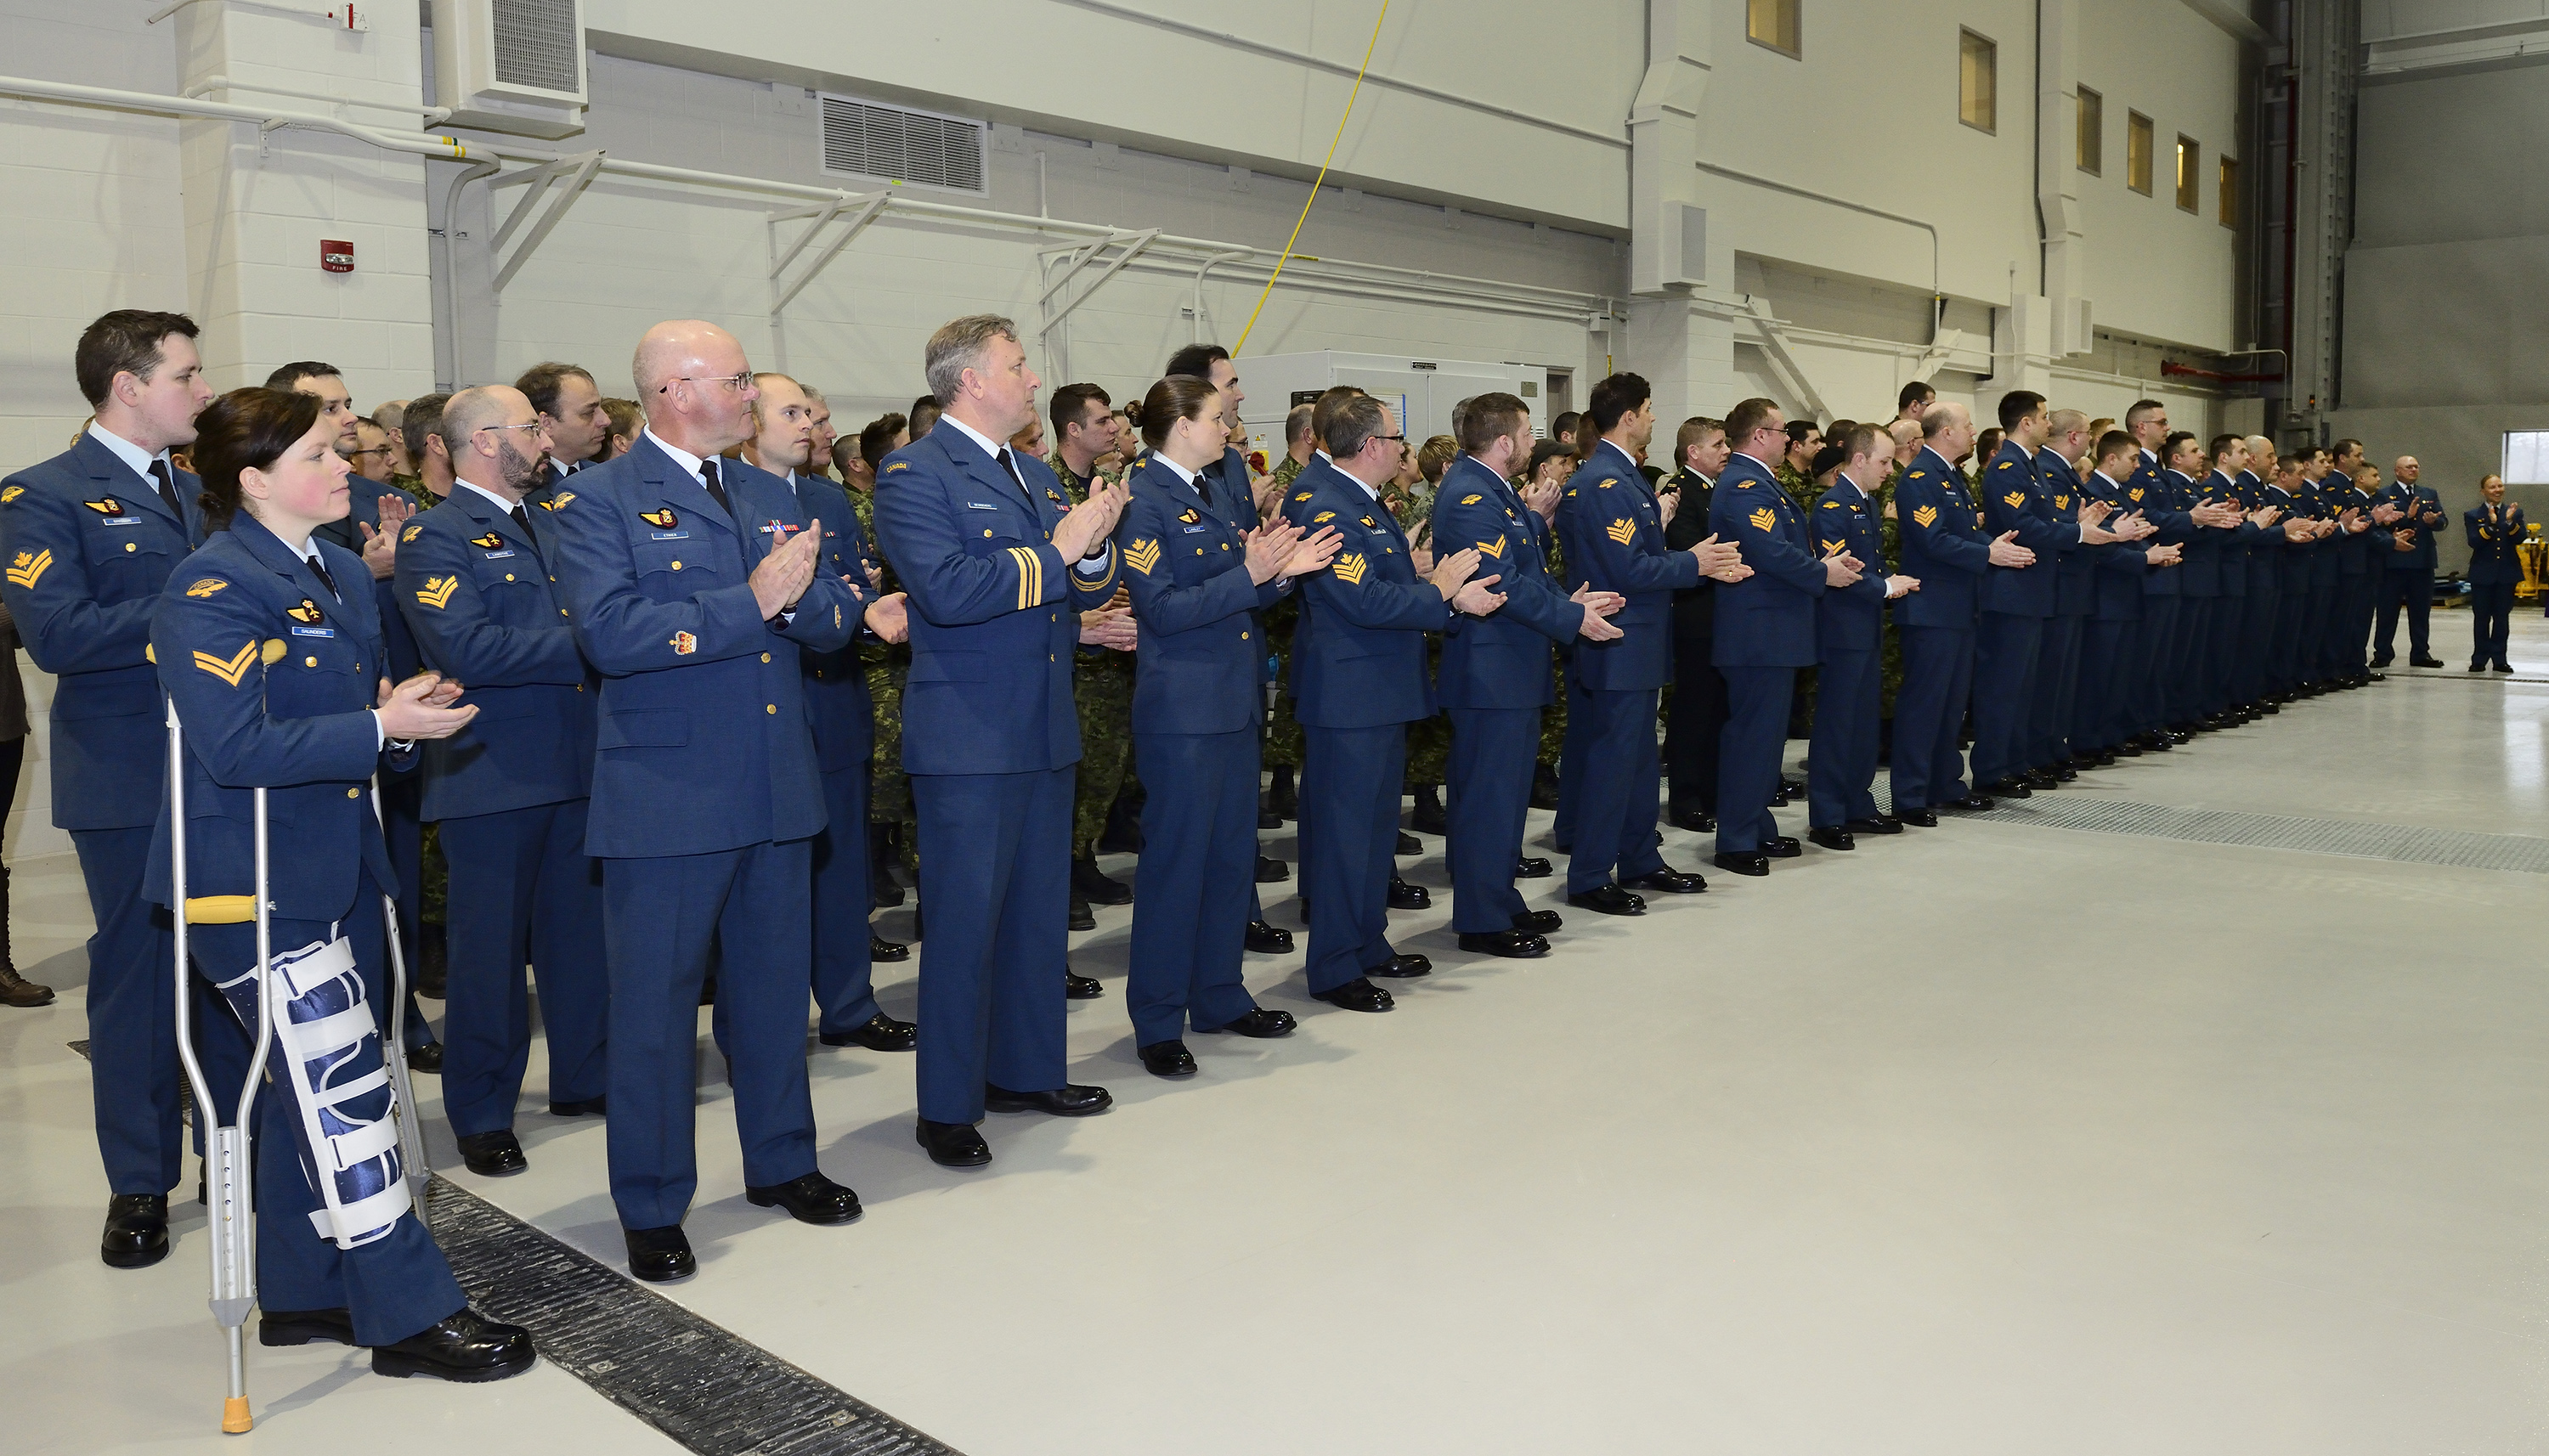 Le personnel du 450e Escadron tactique d'hélicoptères assiste à l'inauguration de l'installation d'instruction des techniciens de CH147F, qui relève de l'Escadrille d'instruction technique de la flotte, le 10 avril 2015. PHOTO : Caporal-chef Melissa Spence